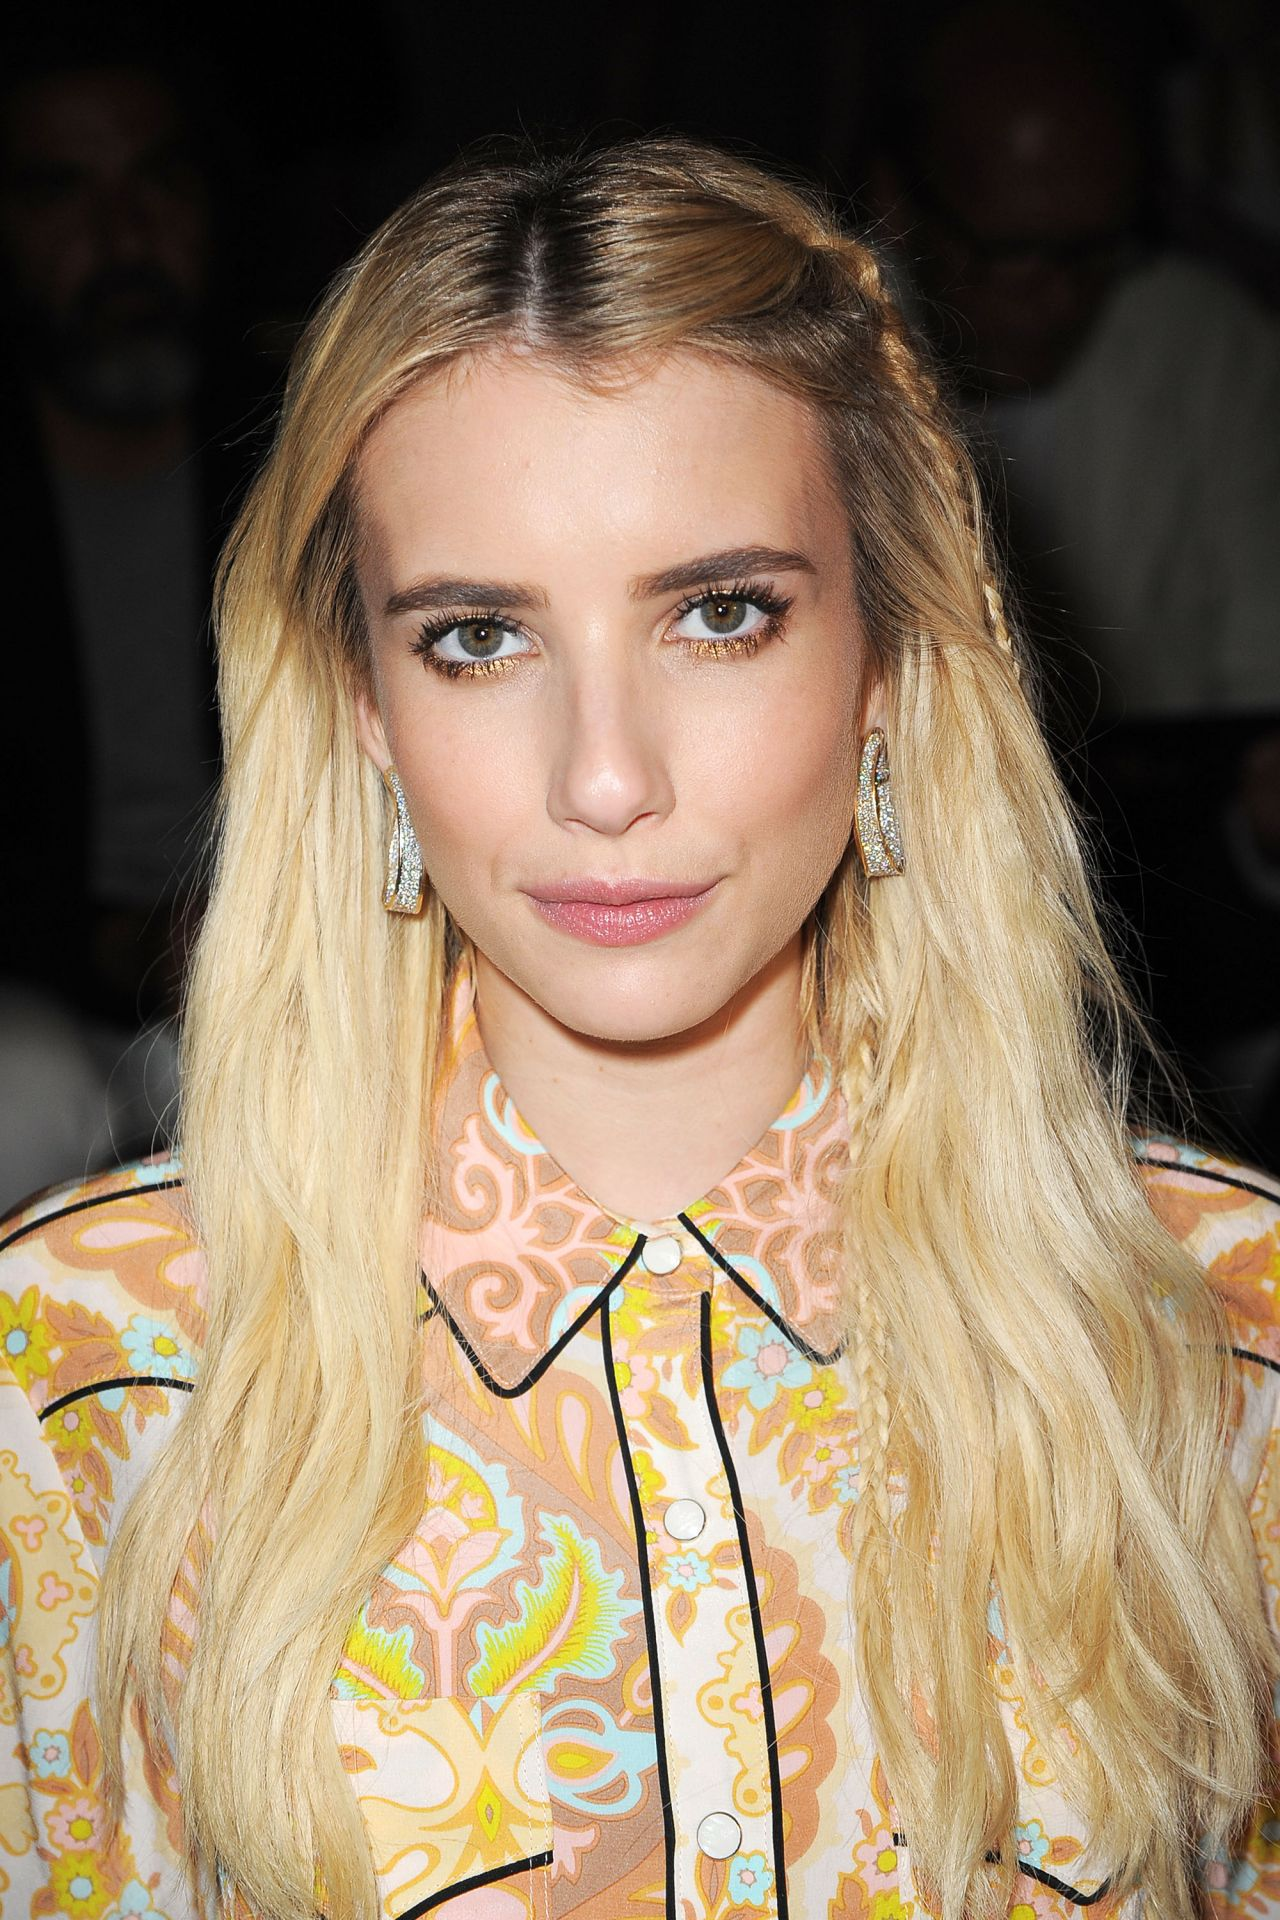 Emma Roberts - Coach 1941 Show at New York Fashion Week 9 ... Emma Roberts